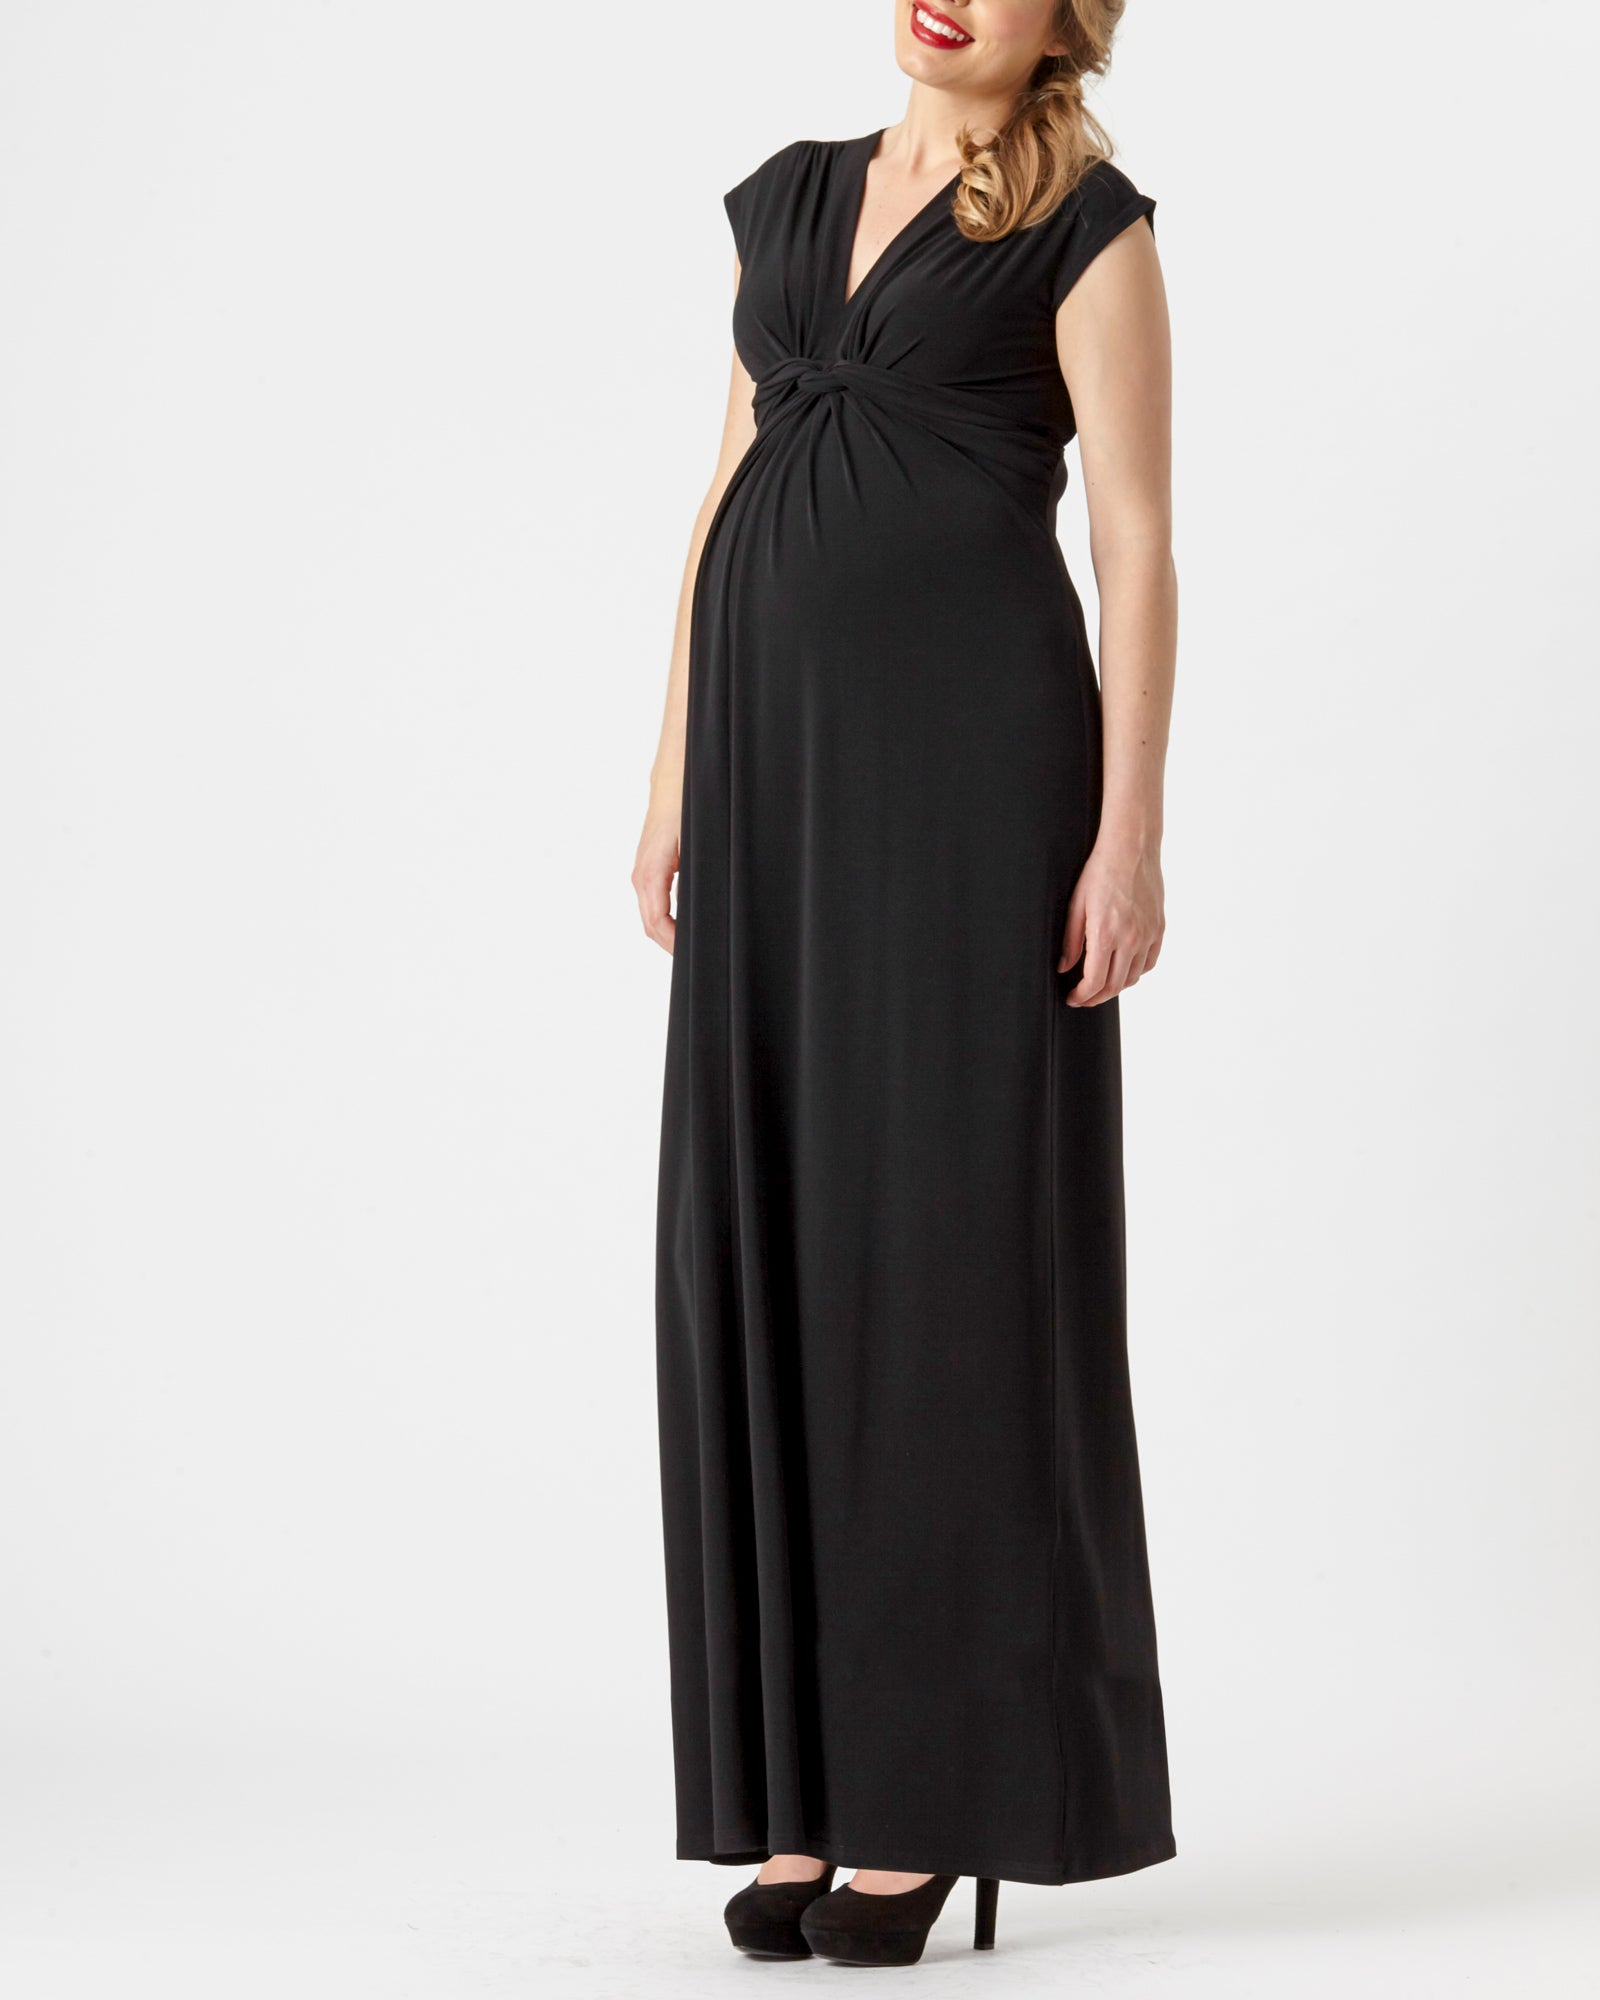 Kate Knotted Maxi (outlet)